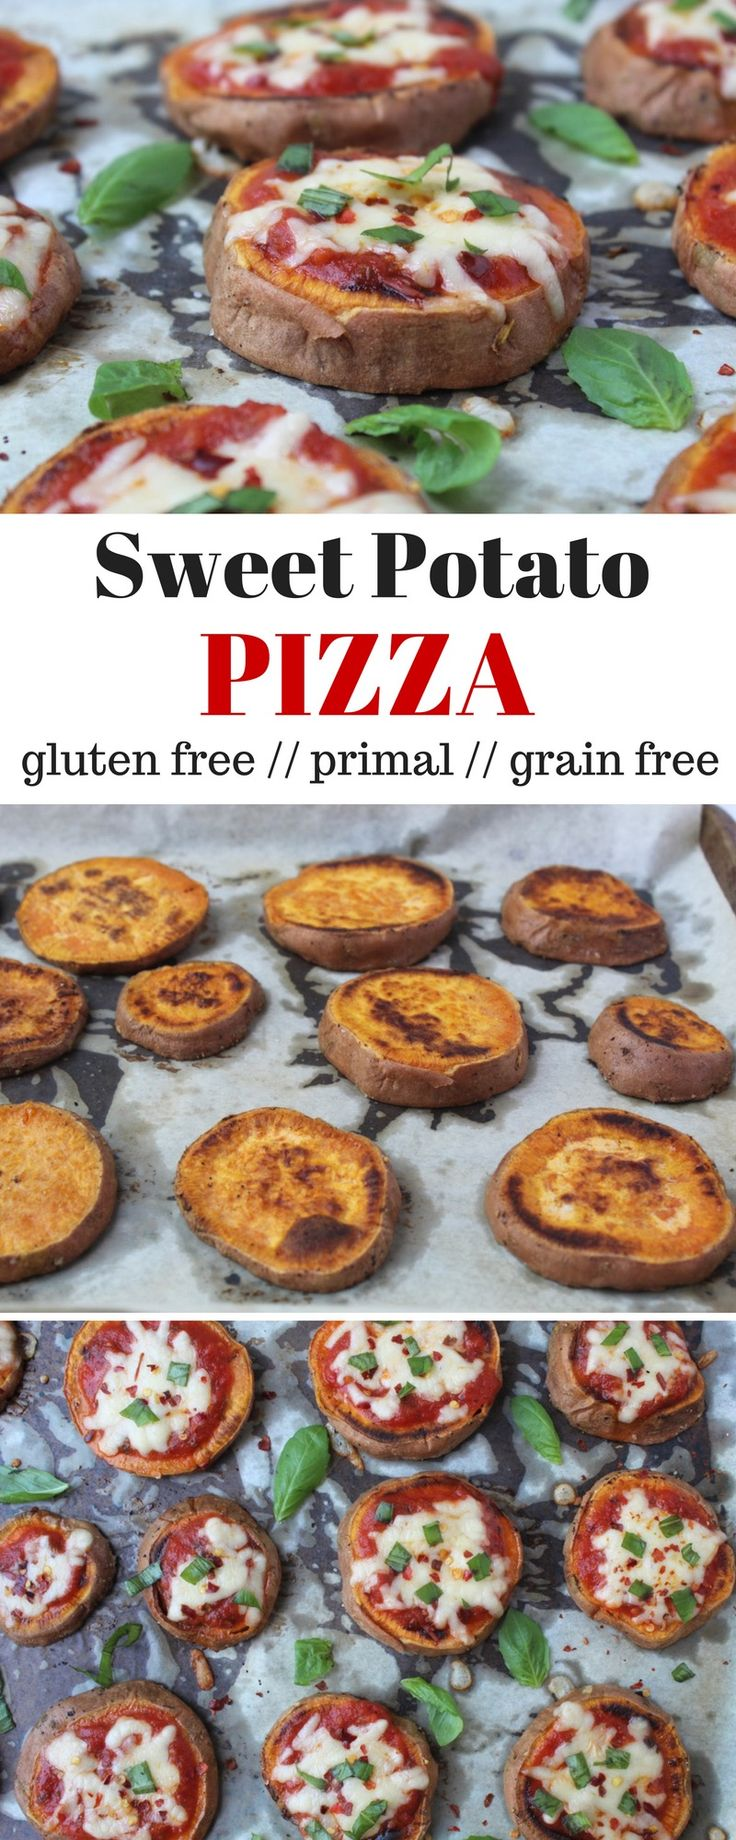 Sweet Potato Pizza - a healthy and easy way to make pizza, these Sweet Potato Pizzas use only 5 ingredients and are primal, naturally gluten free, and grain free! - Eat the Gains